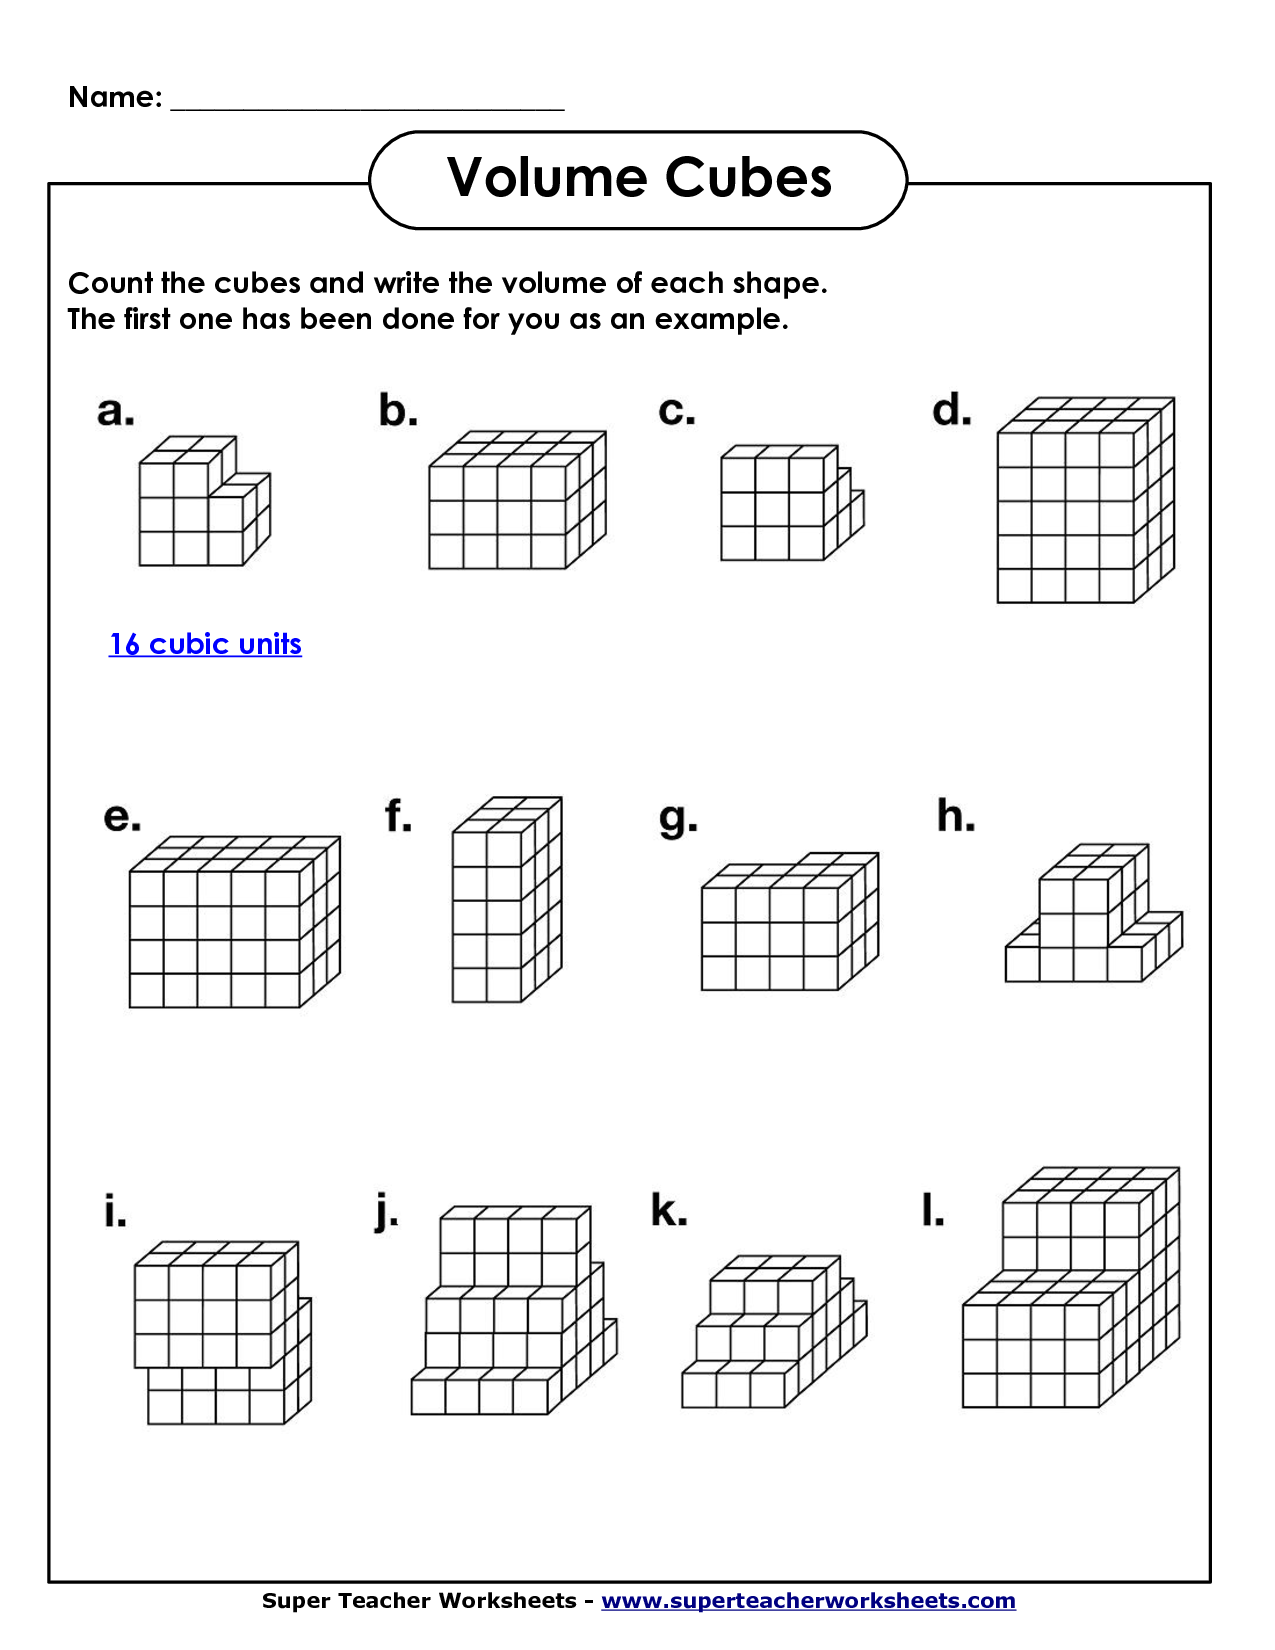 Worksheet Volume Conversion Worksheets 1000 images about school ideas on pinterest